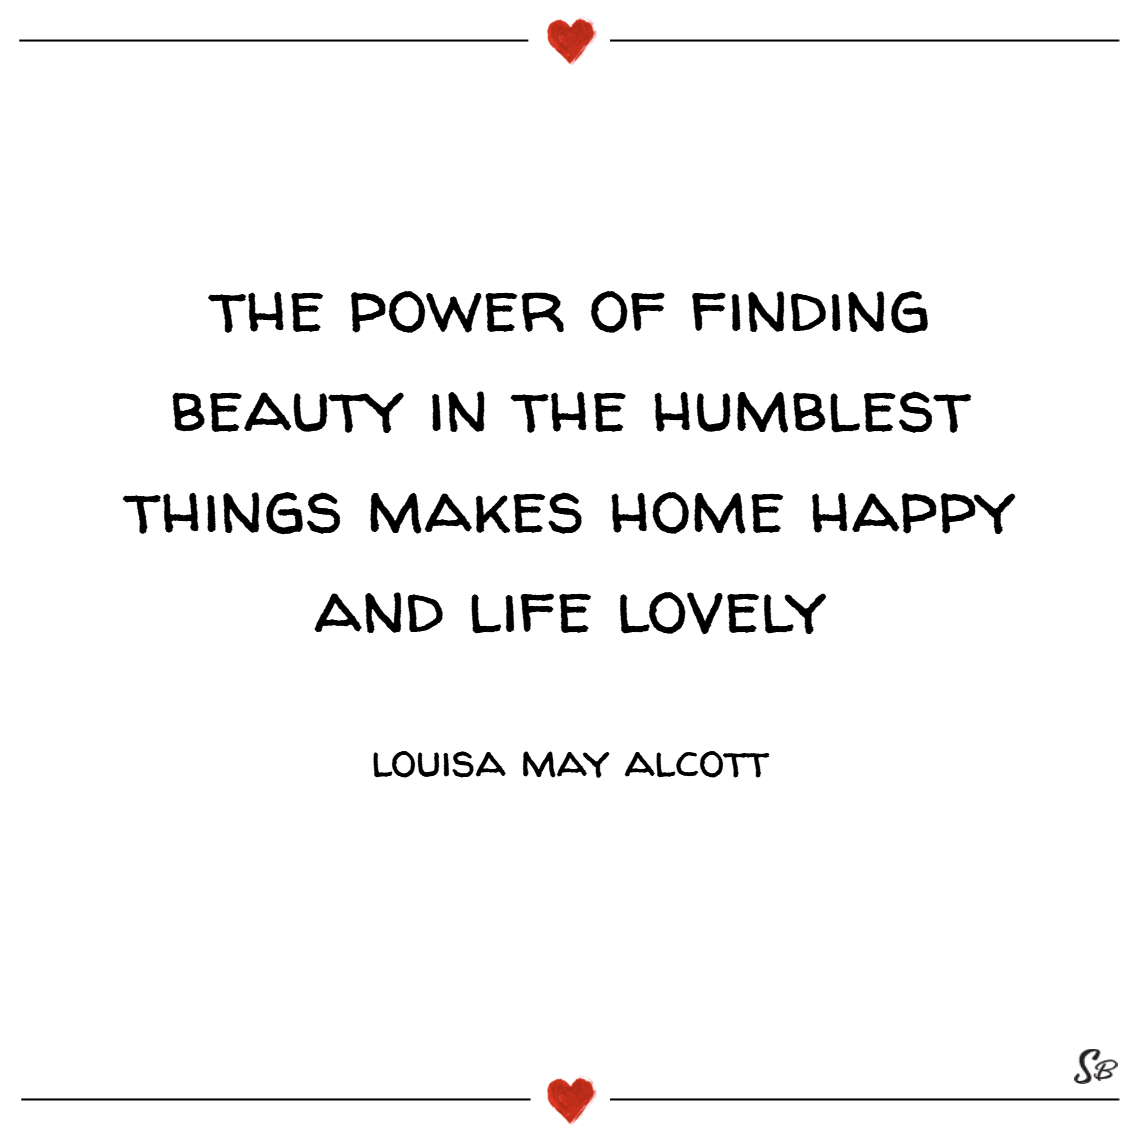 He power of finding beauty in the humblest things makes home happy and life lovely. – louisa may alcott